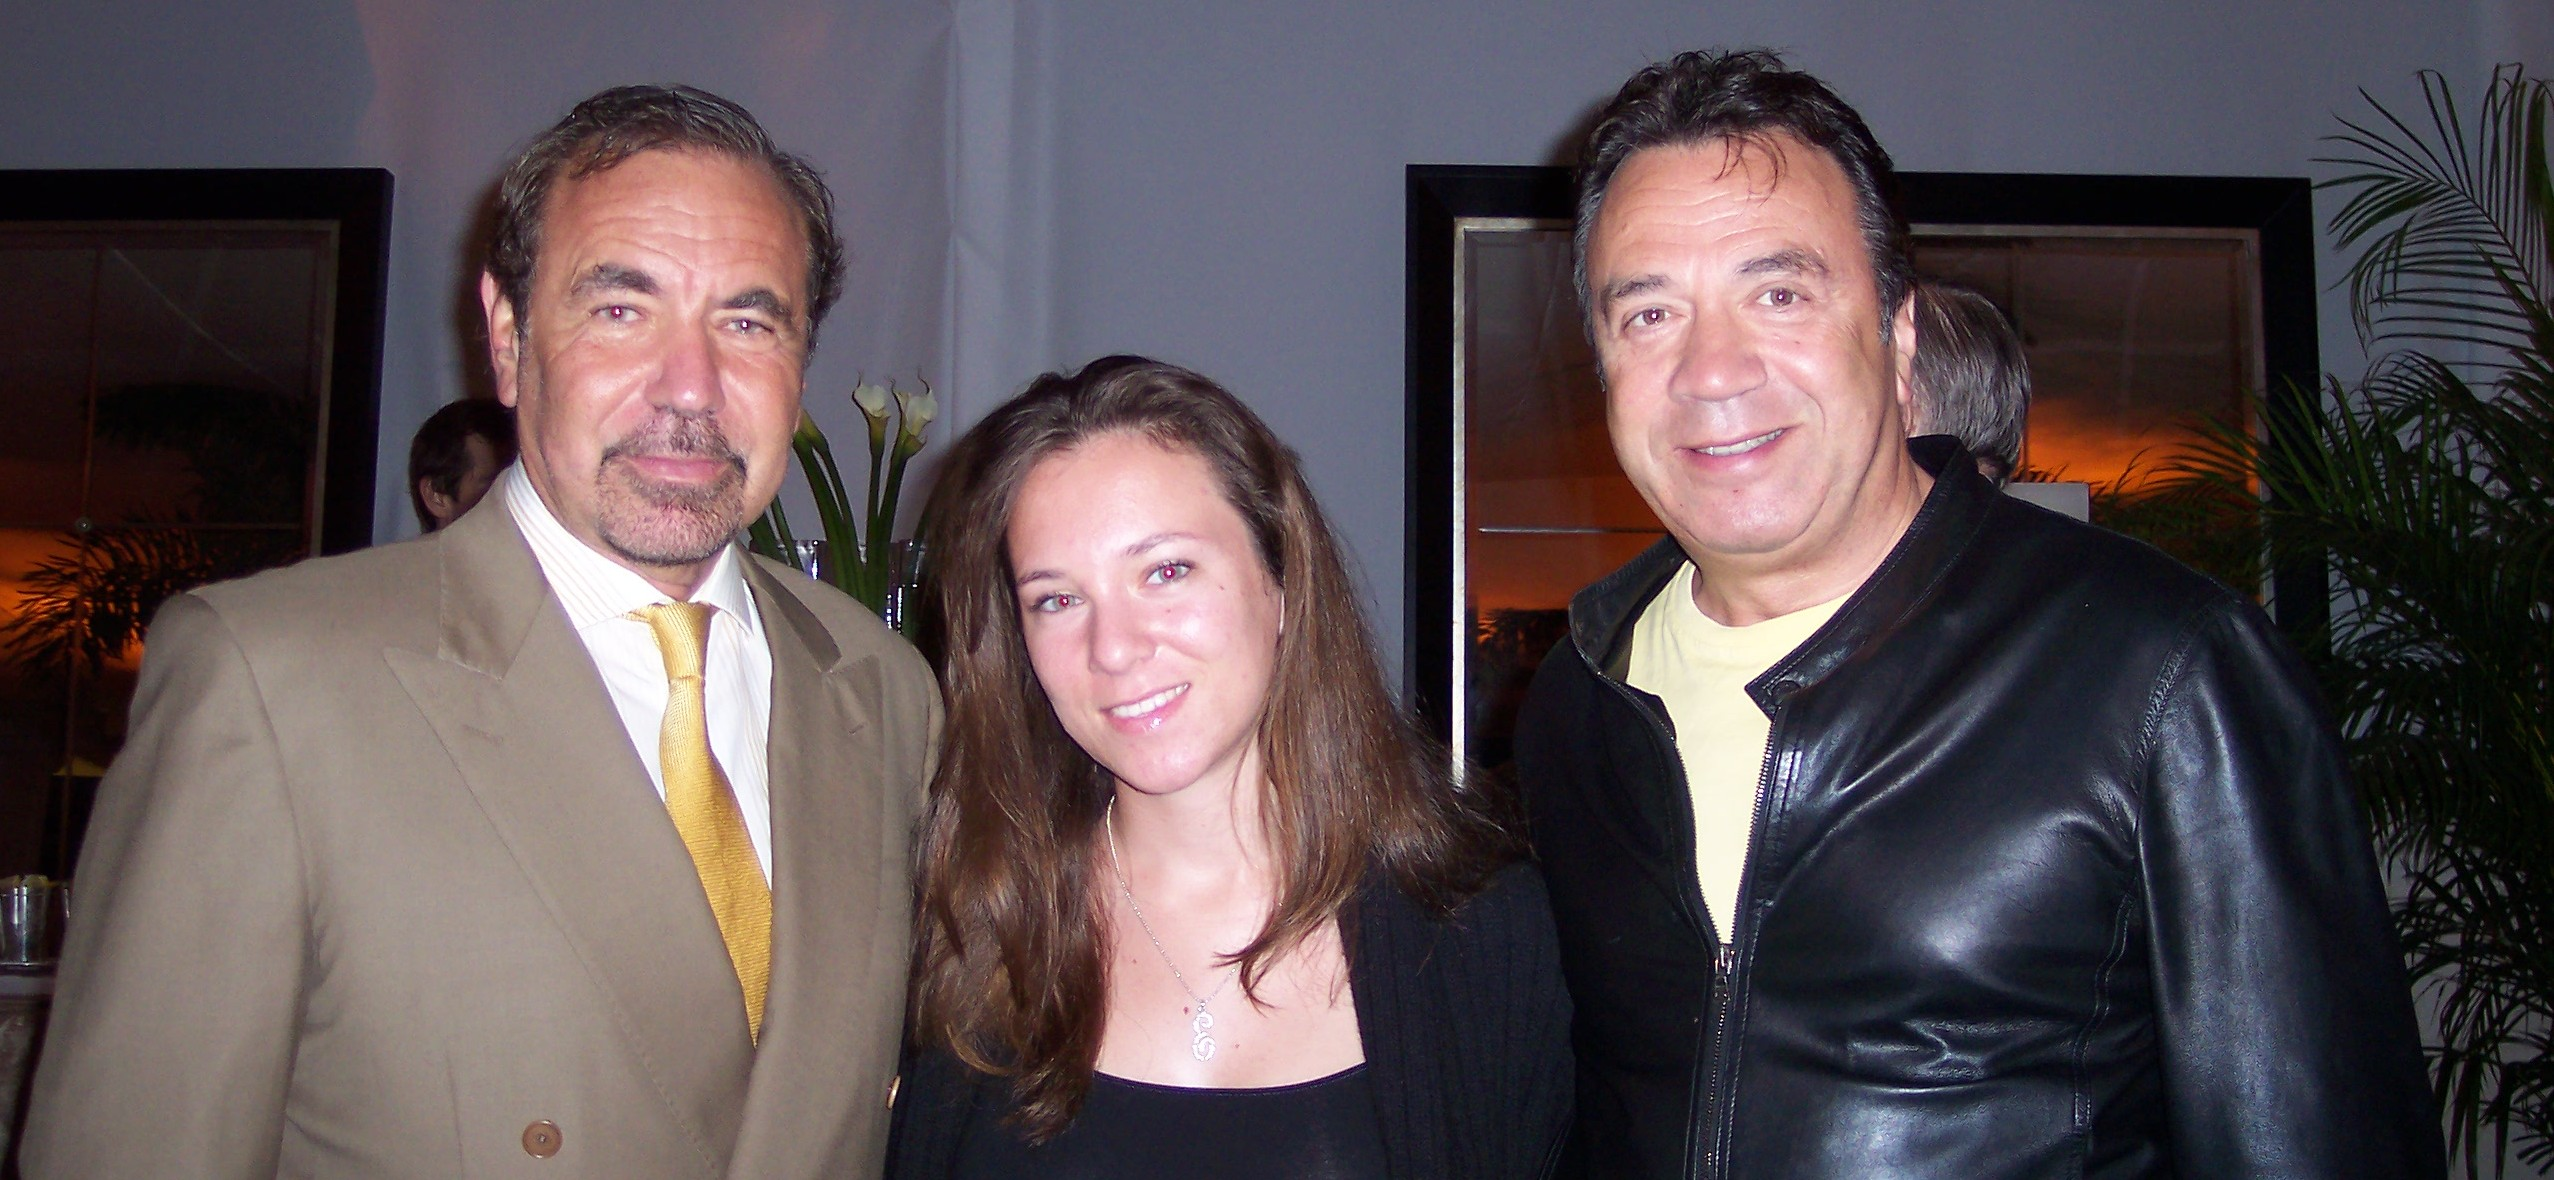 Roman with his daughter Elizabeth and Related Group's Jorge Perez